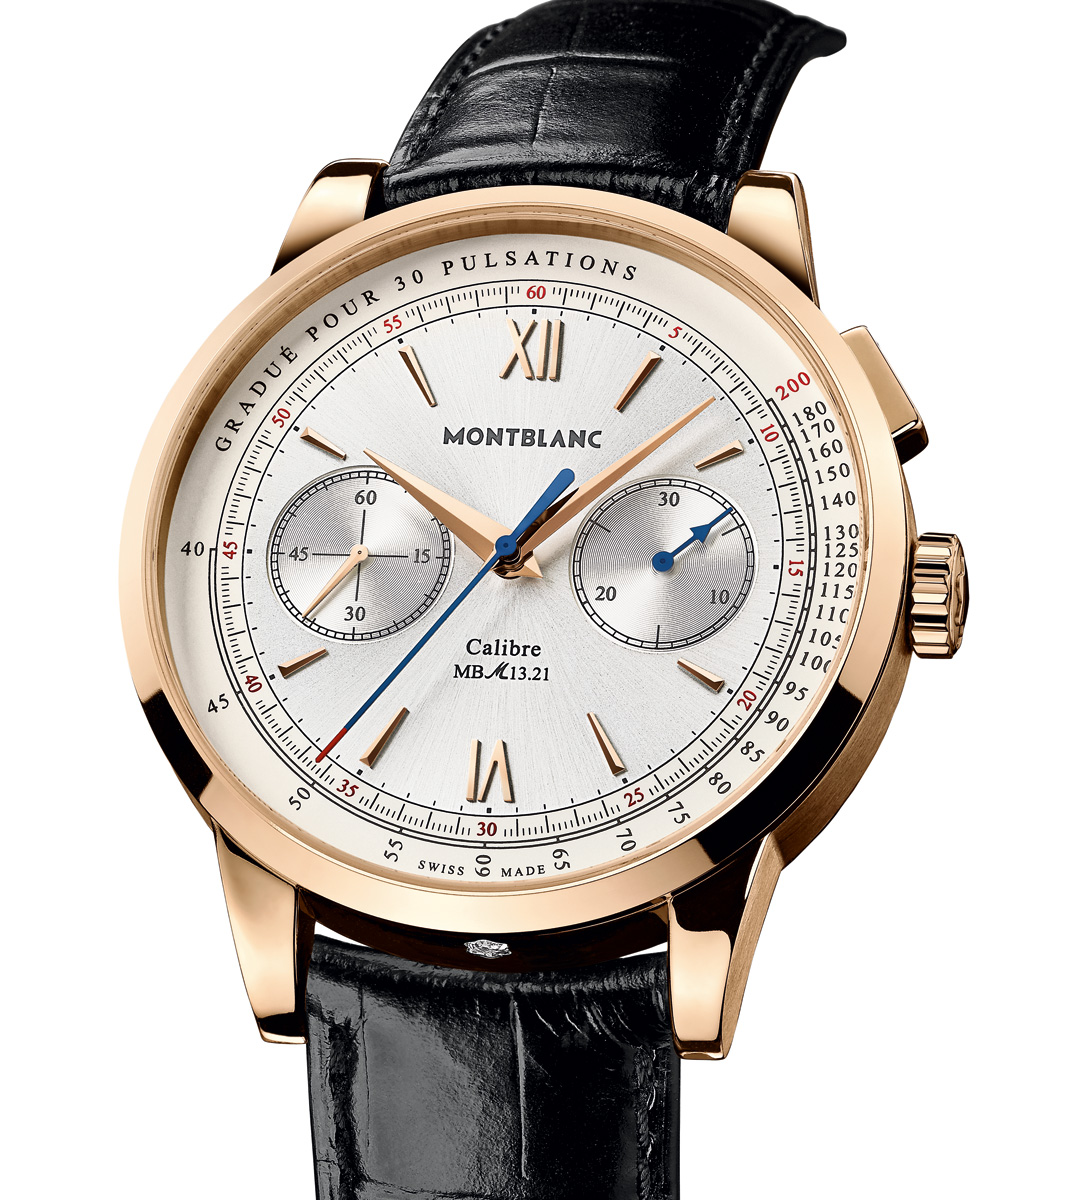 Montblanc-MeisterstC3BCck-Heritage-Pulsograph-281291